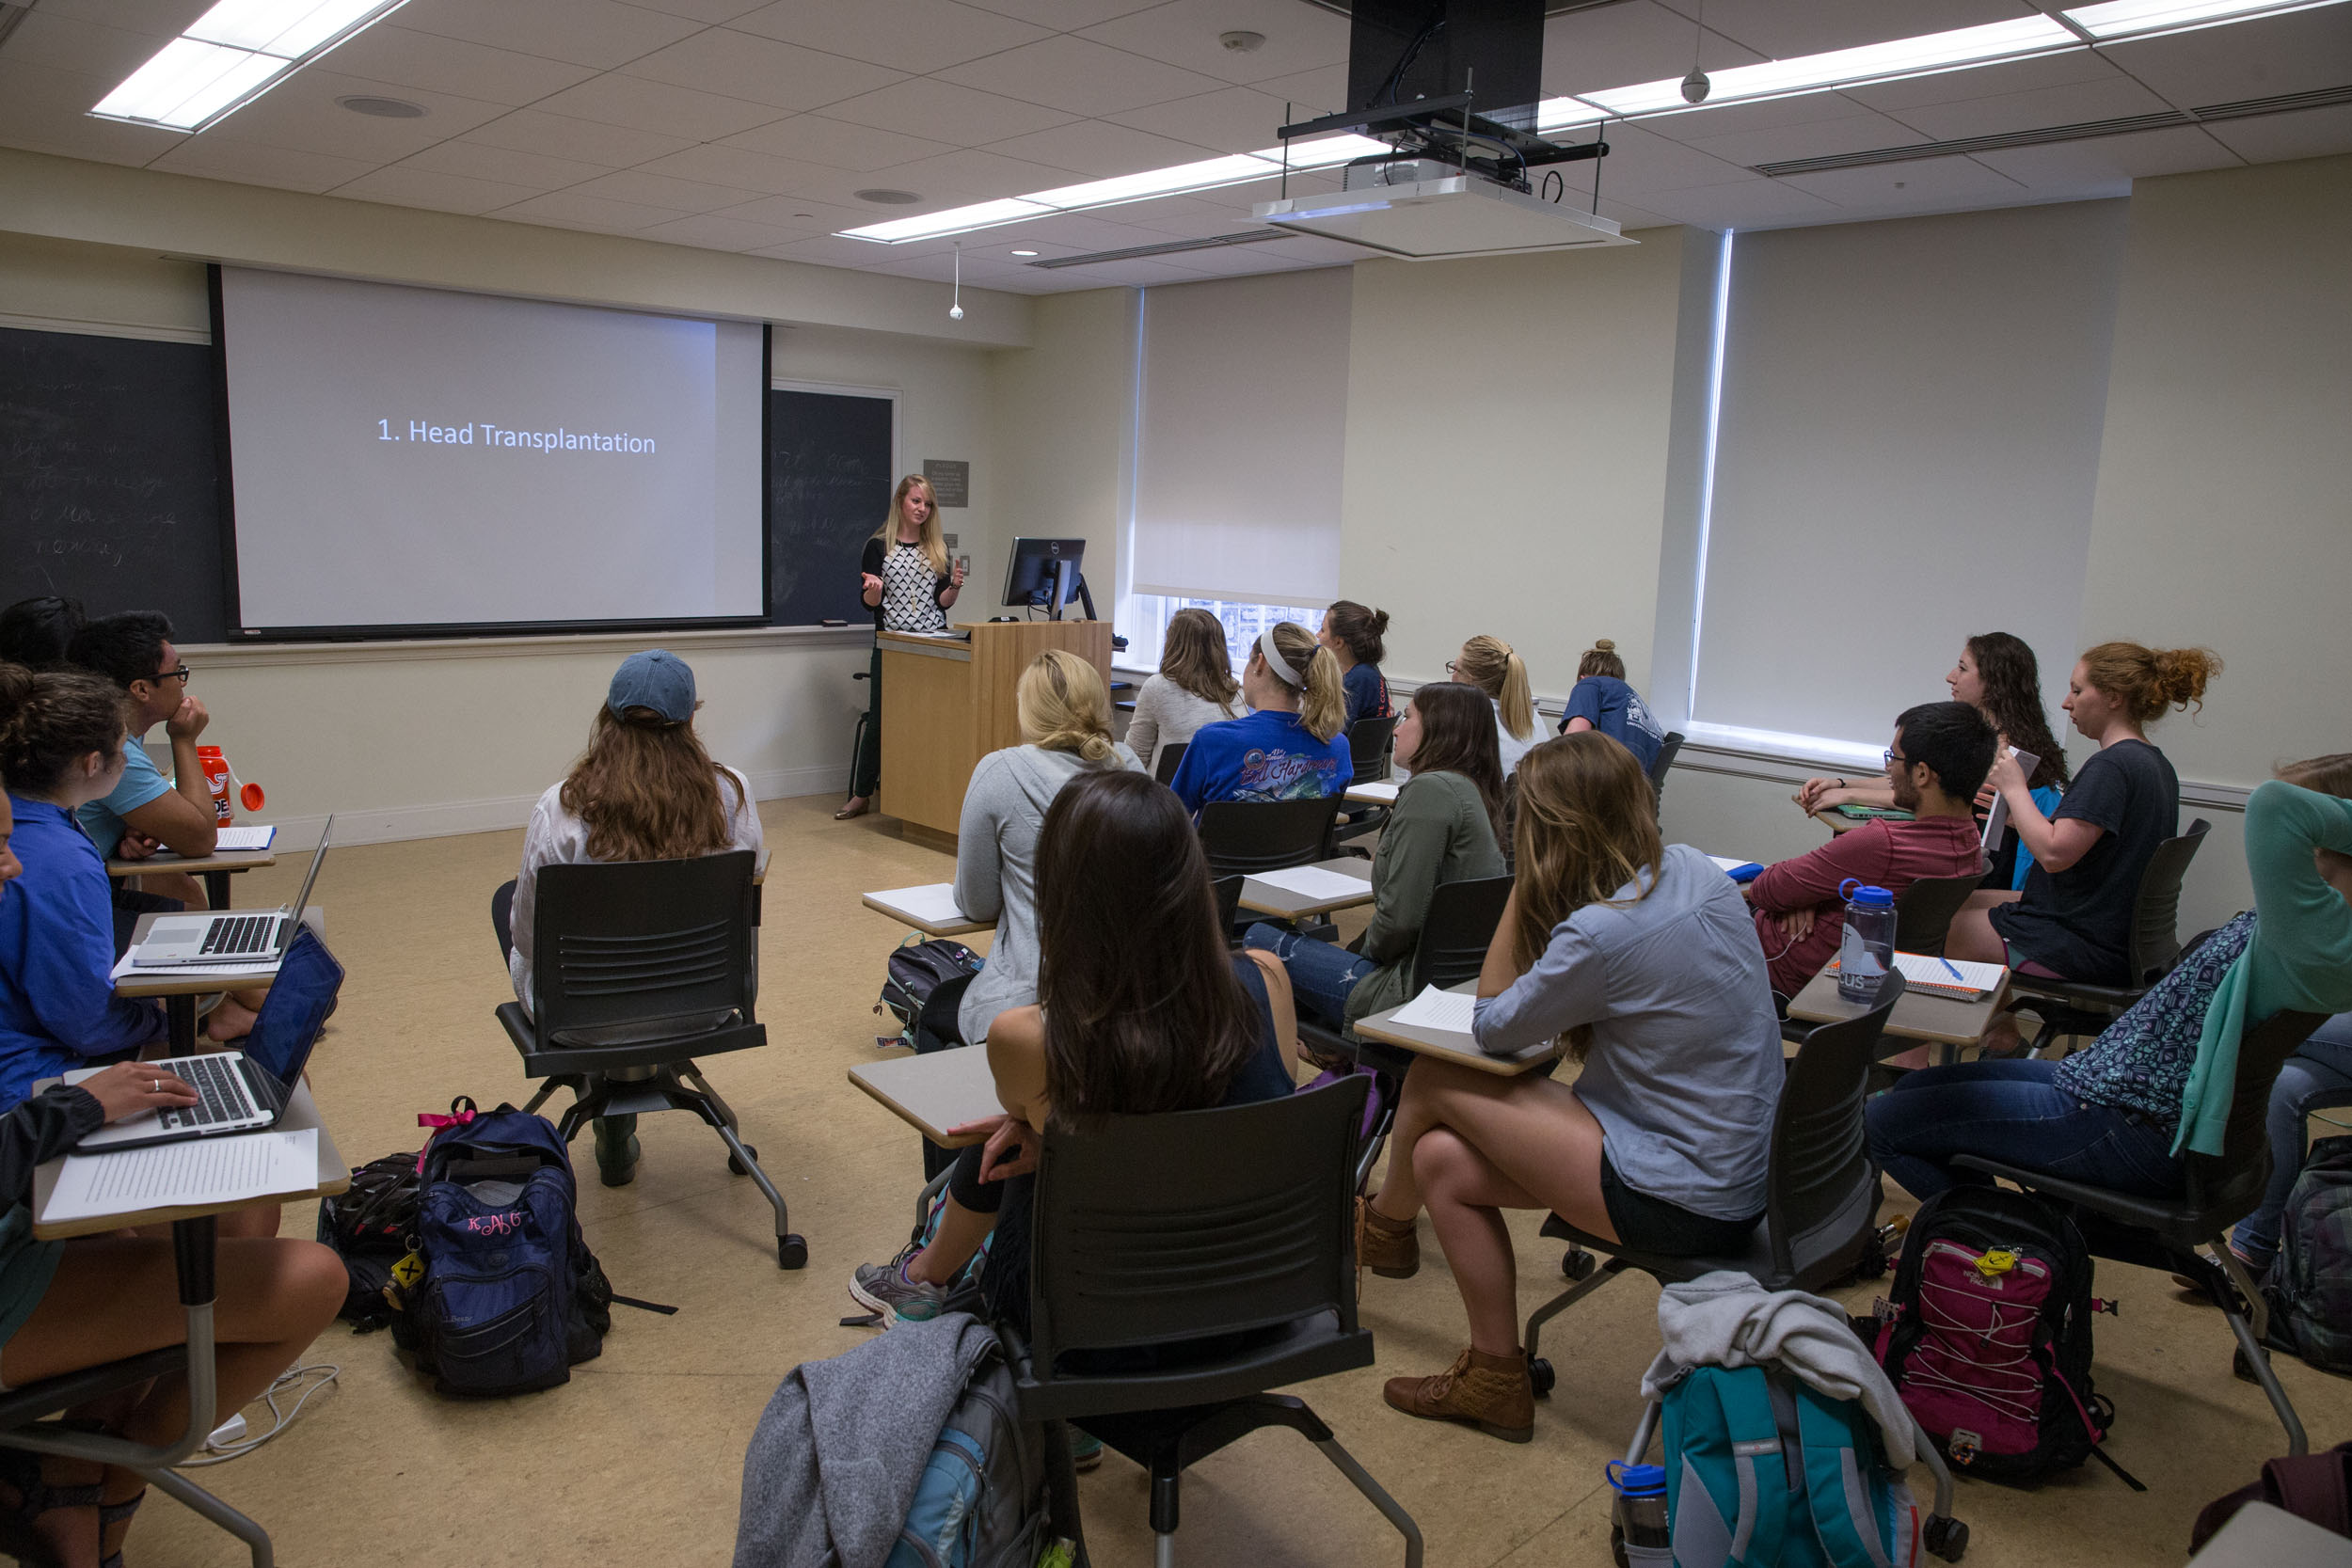 Bruno teaches an undergraduate seminar on the ethics of organ transplantation.